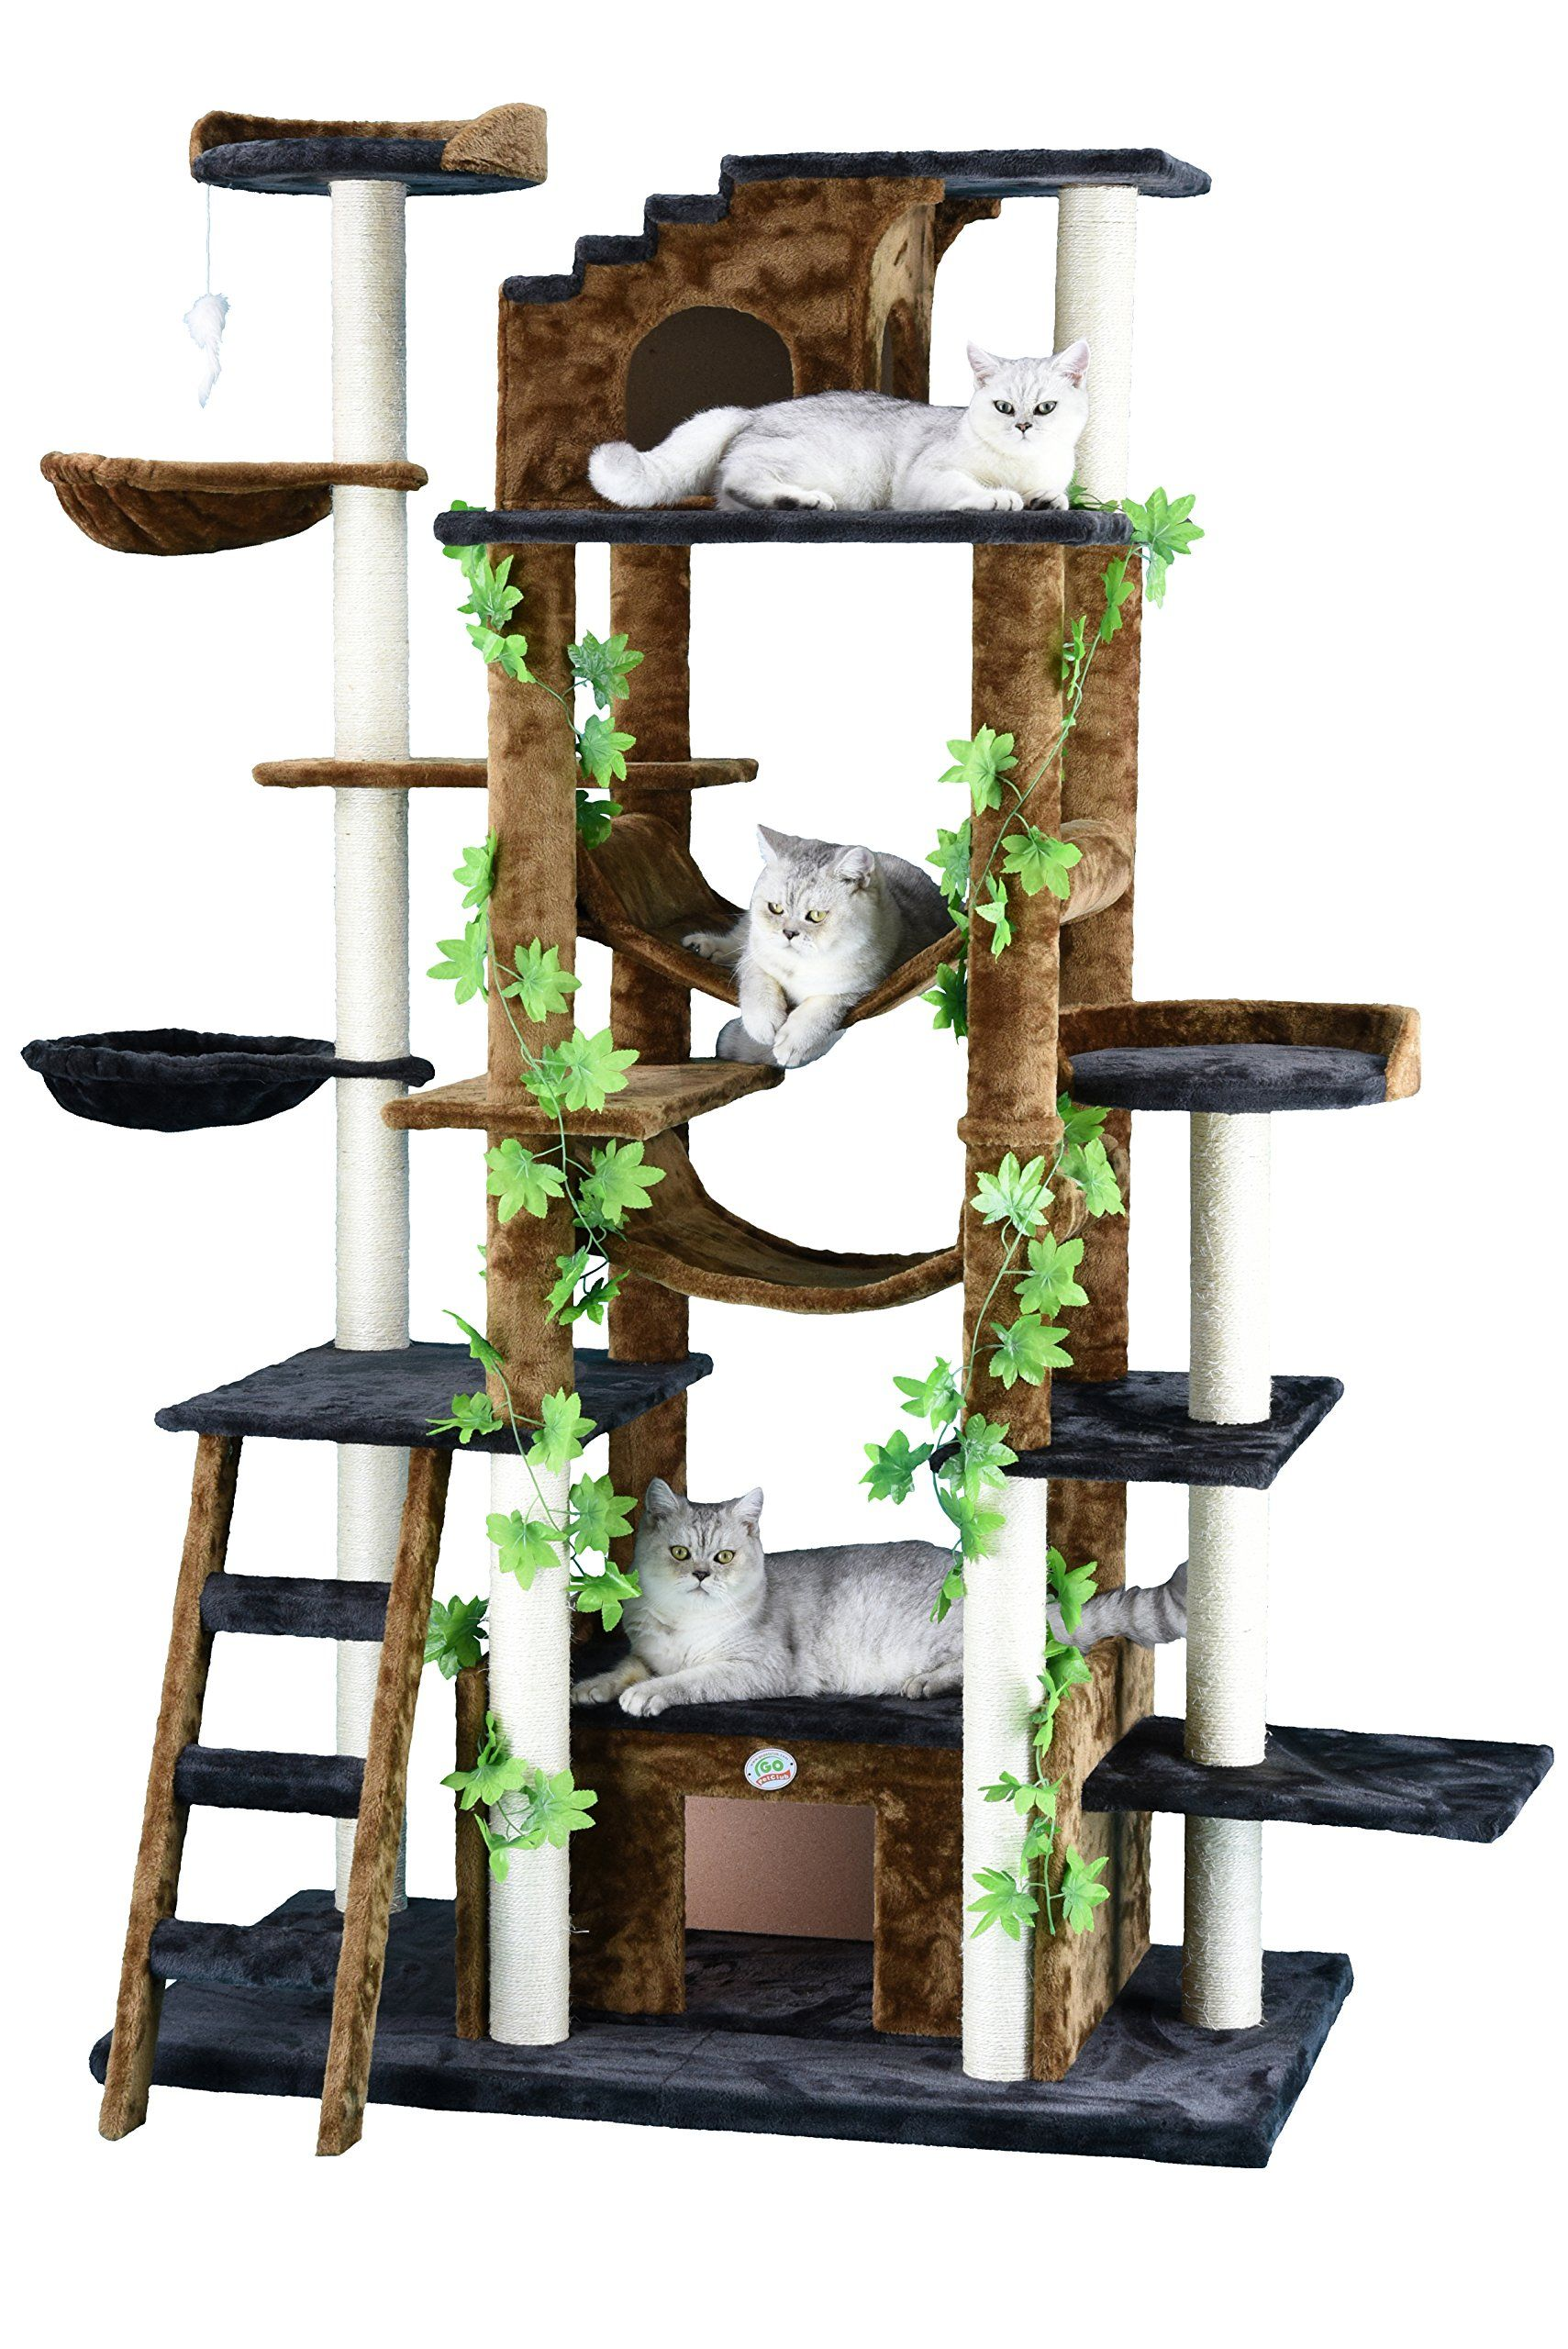 Go Pet Club 77Inch Cat Tree Brown/Black Make certain to